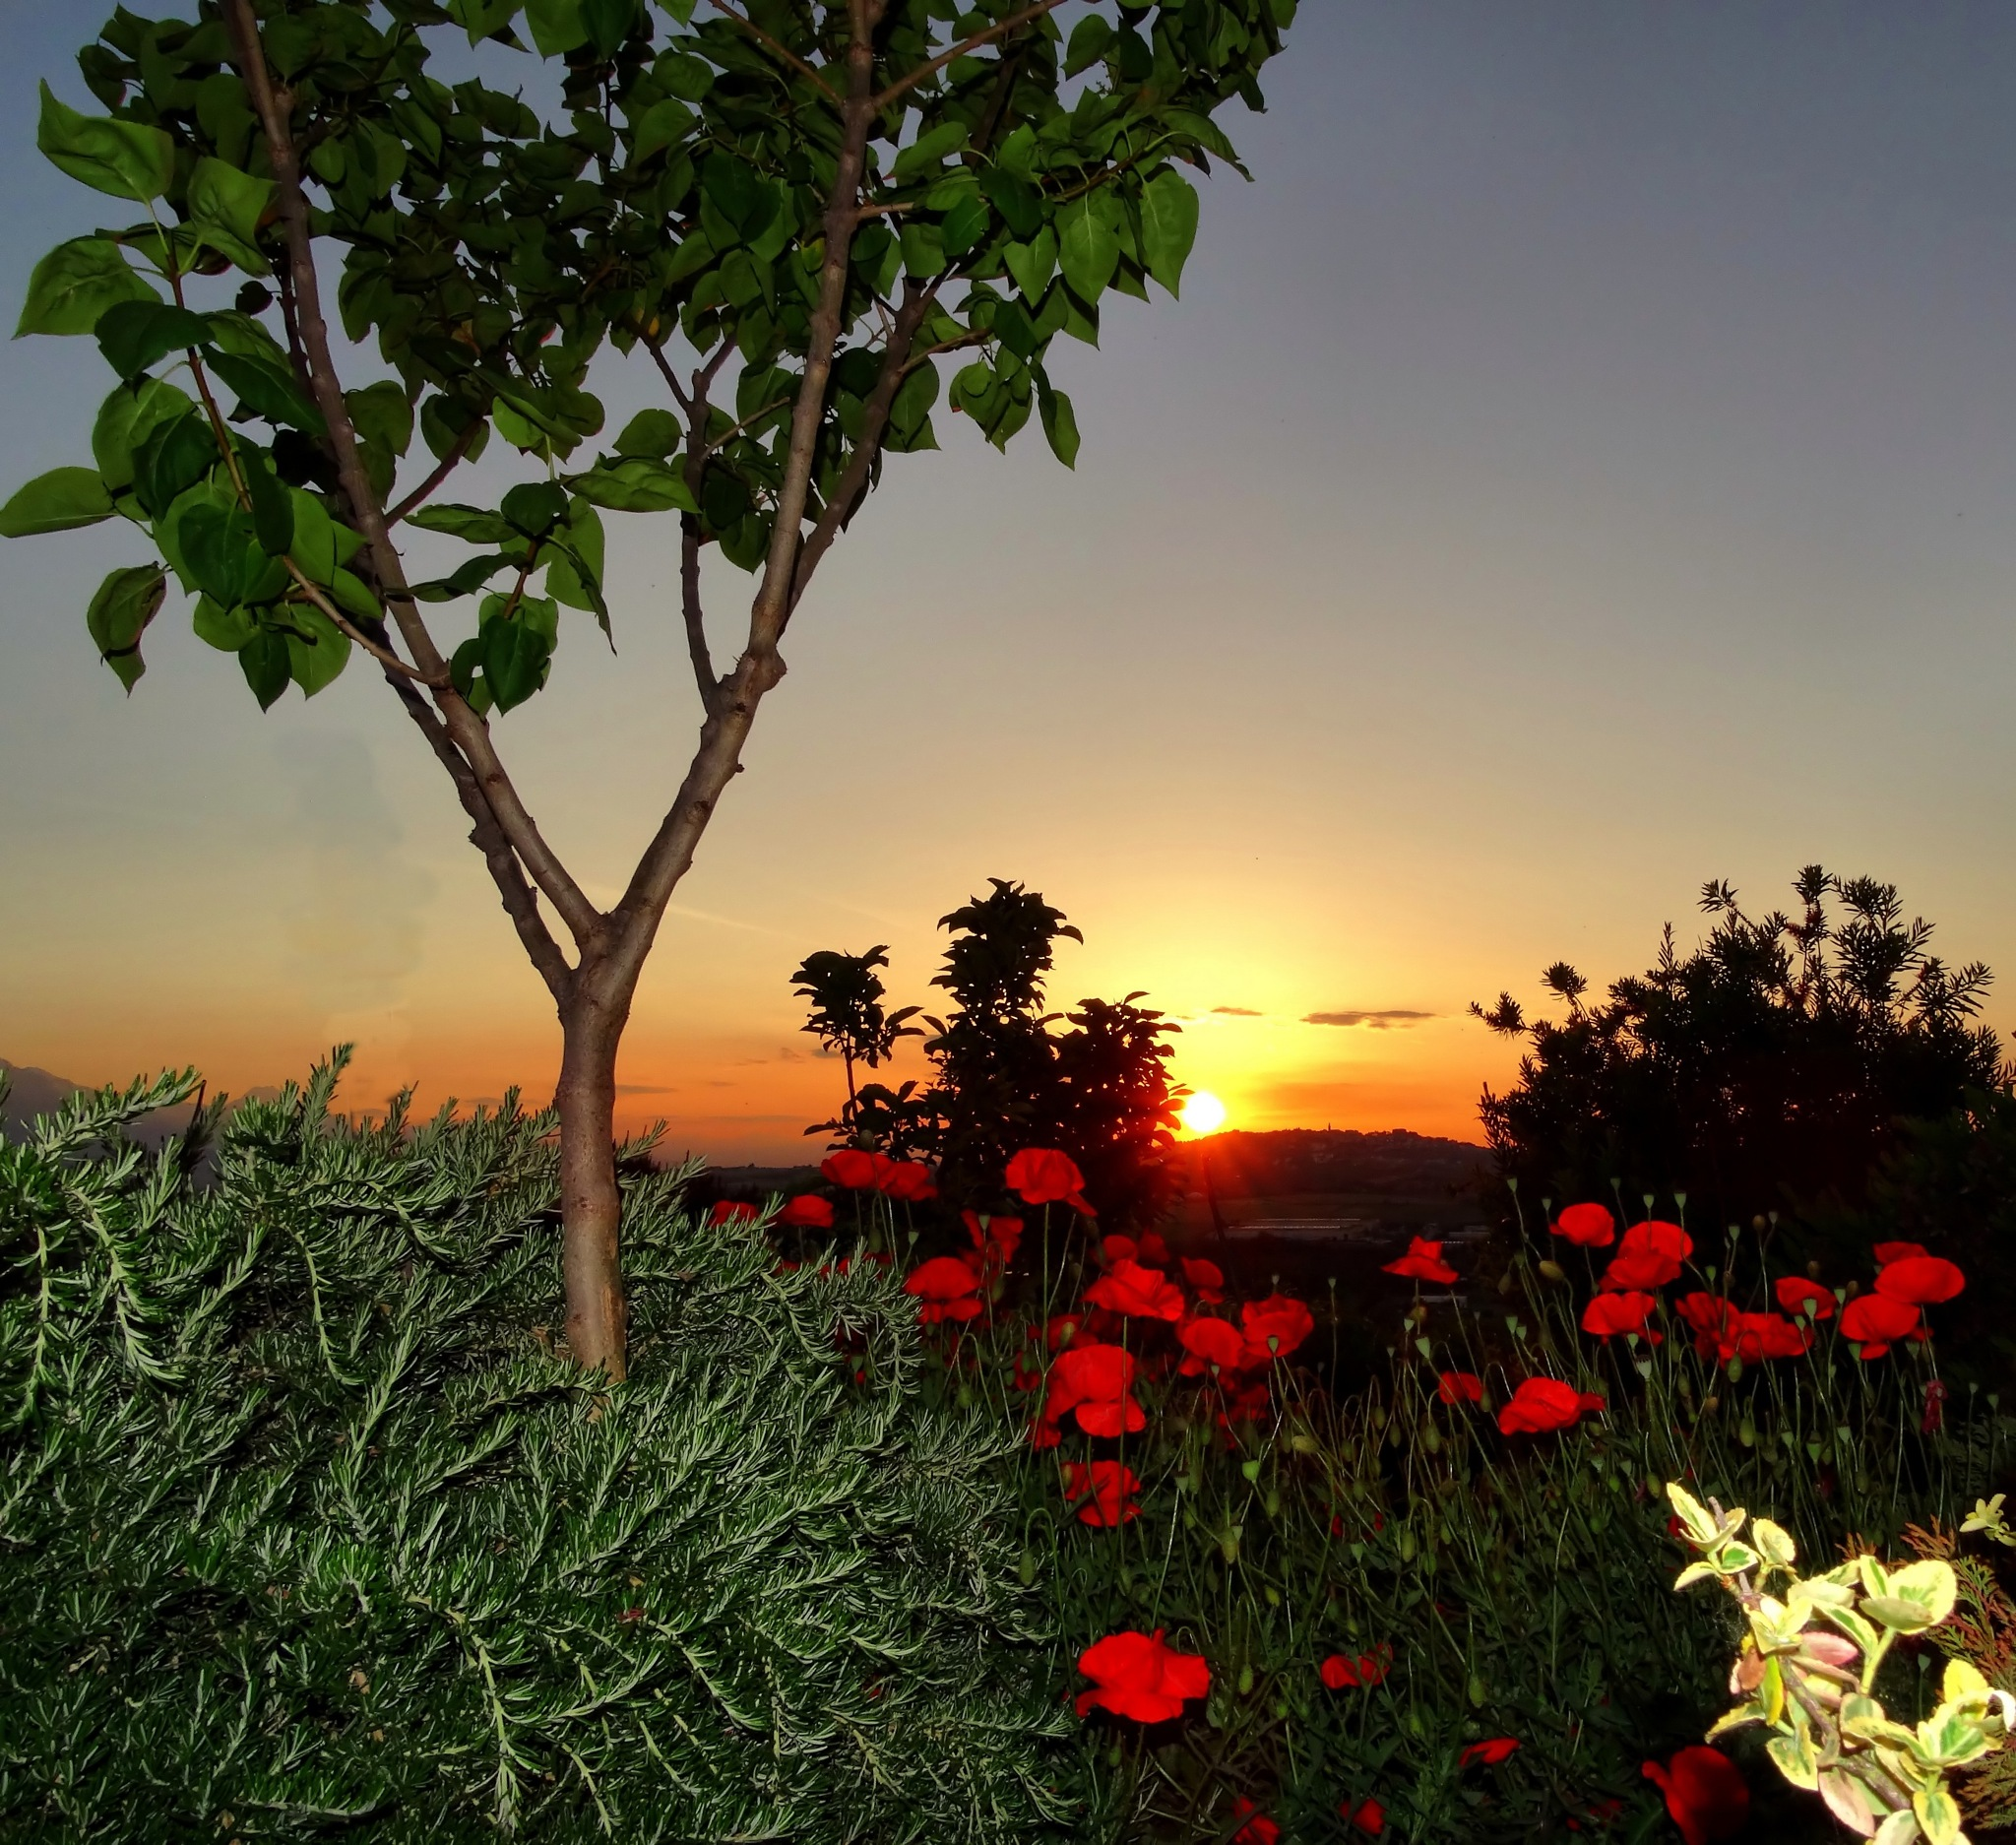 Poppies are red even at sunset by Mariano Arizzi Novelli